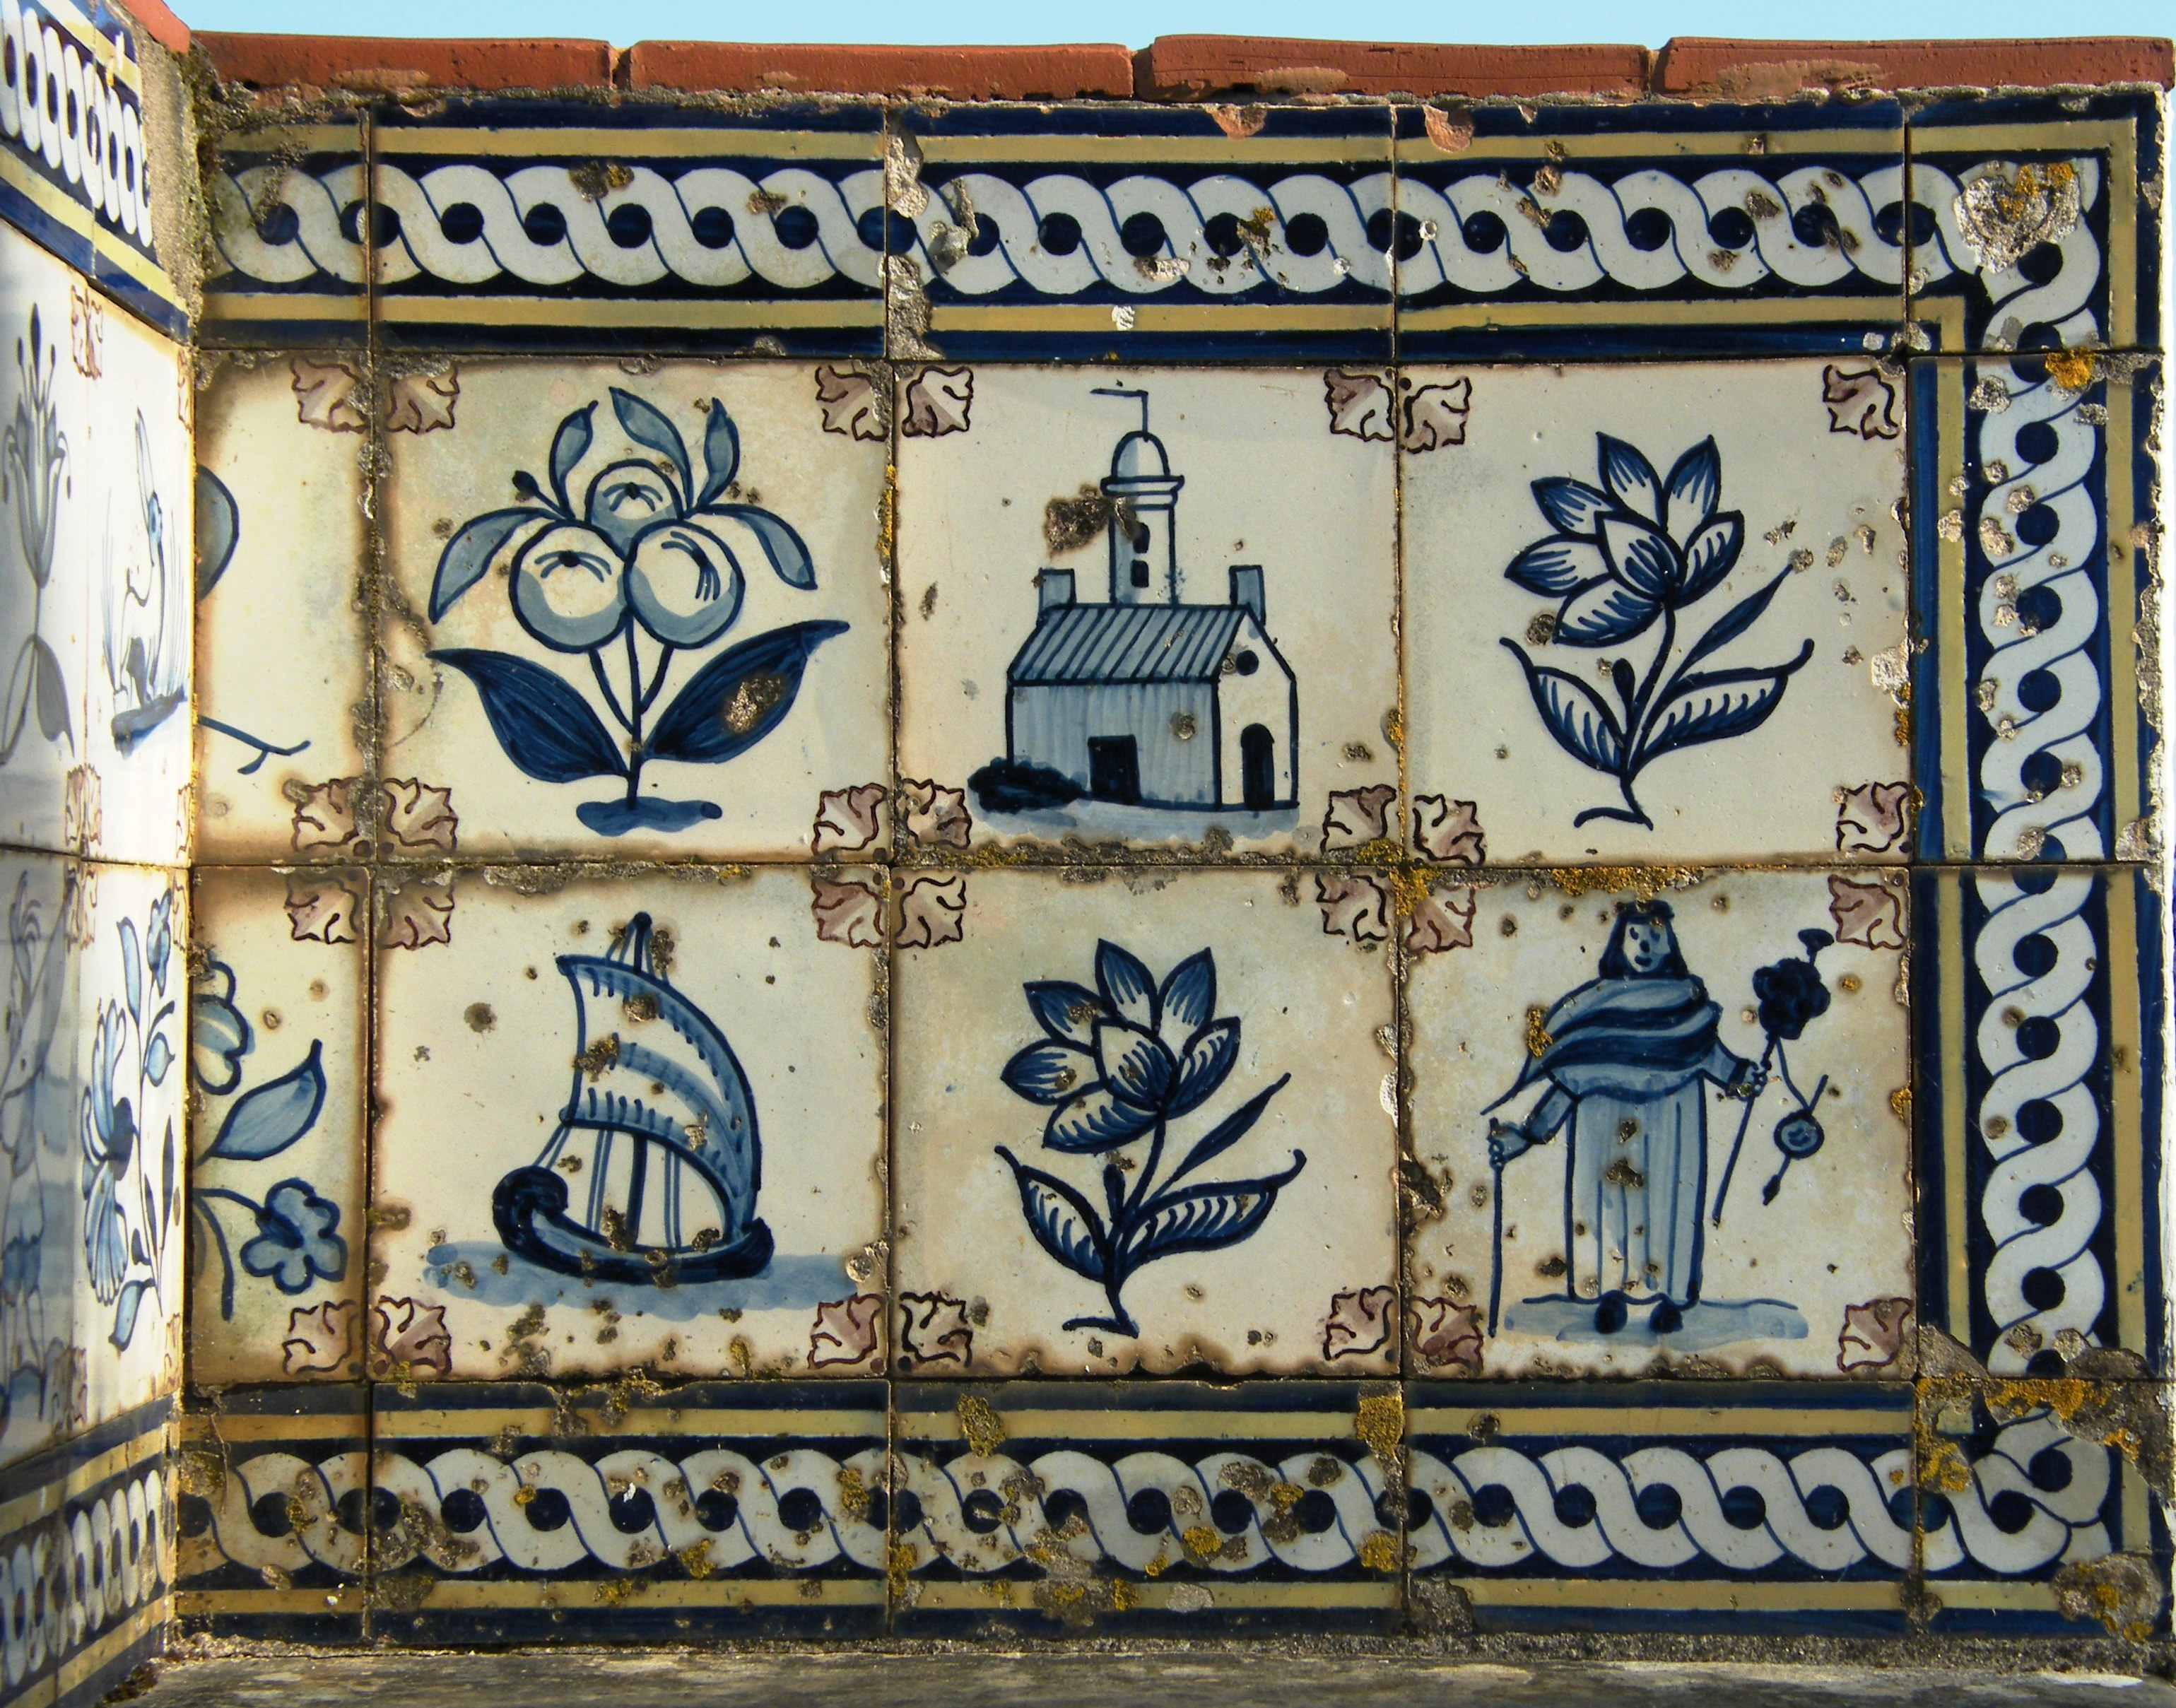 Detail of a tiled bench at Igreja Antonio dos Olivais in Coimbra